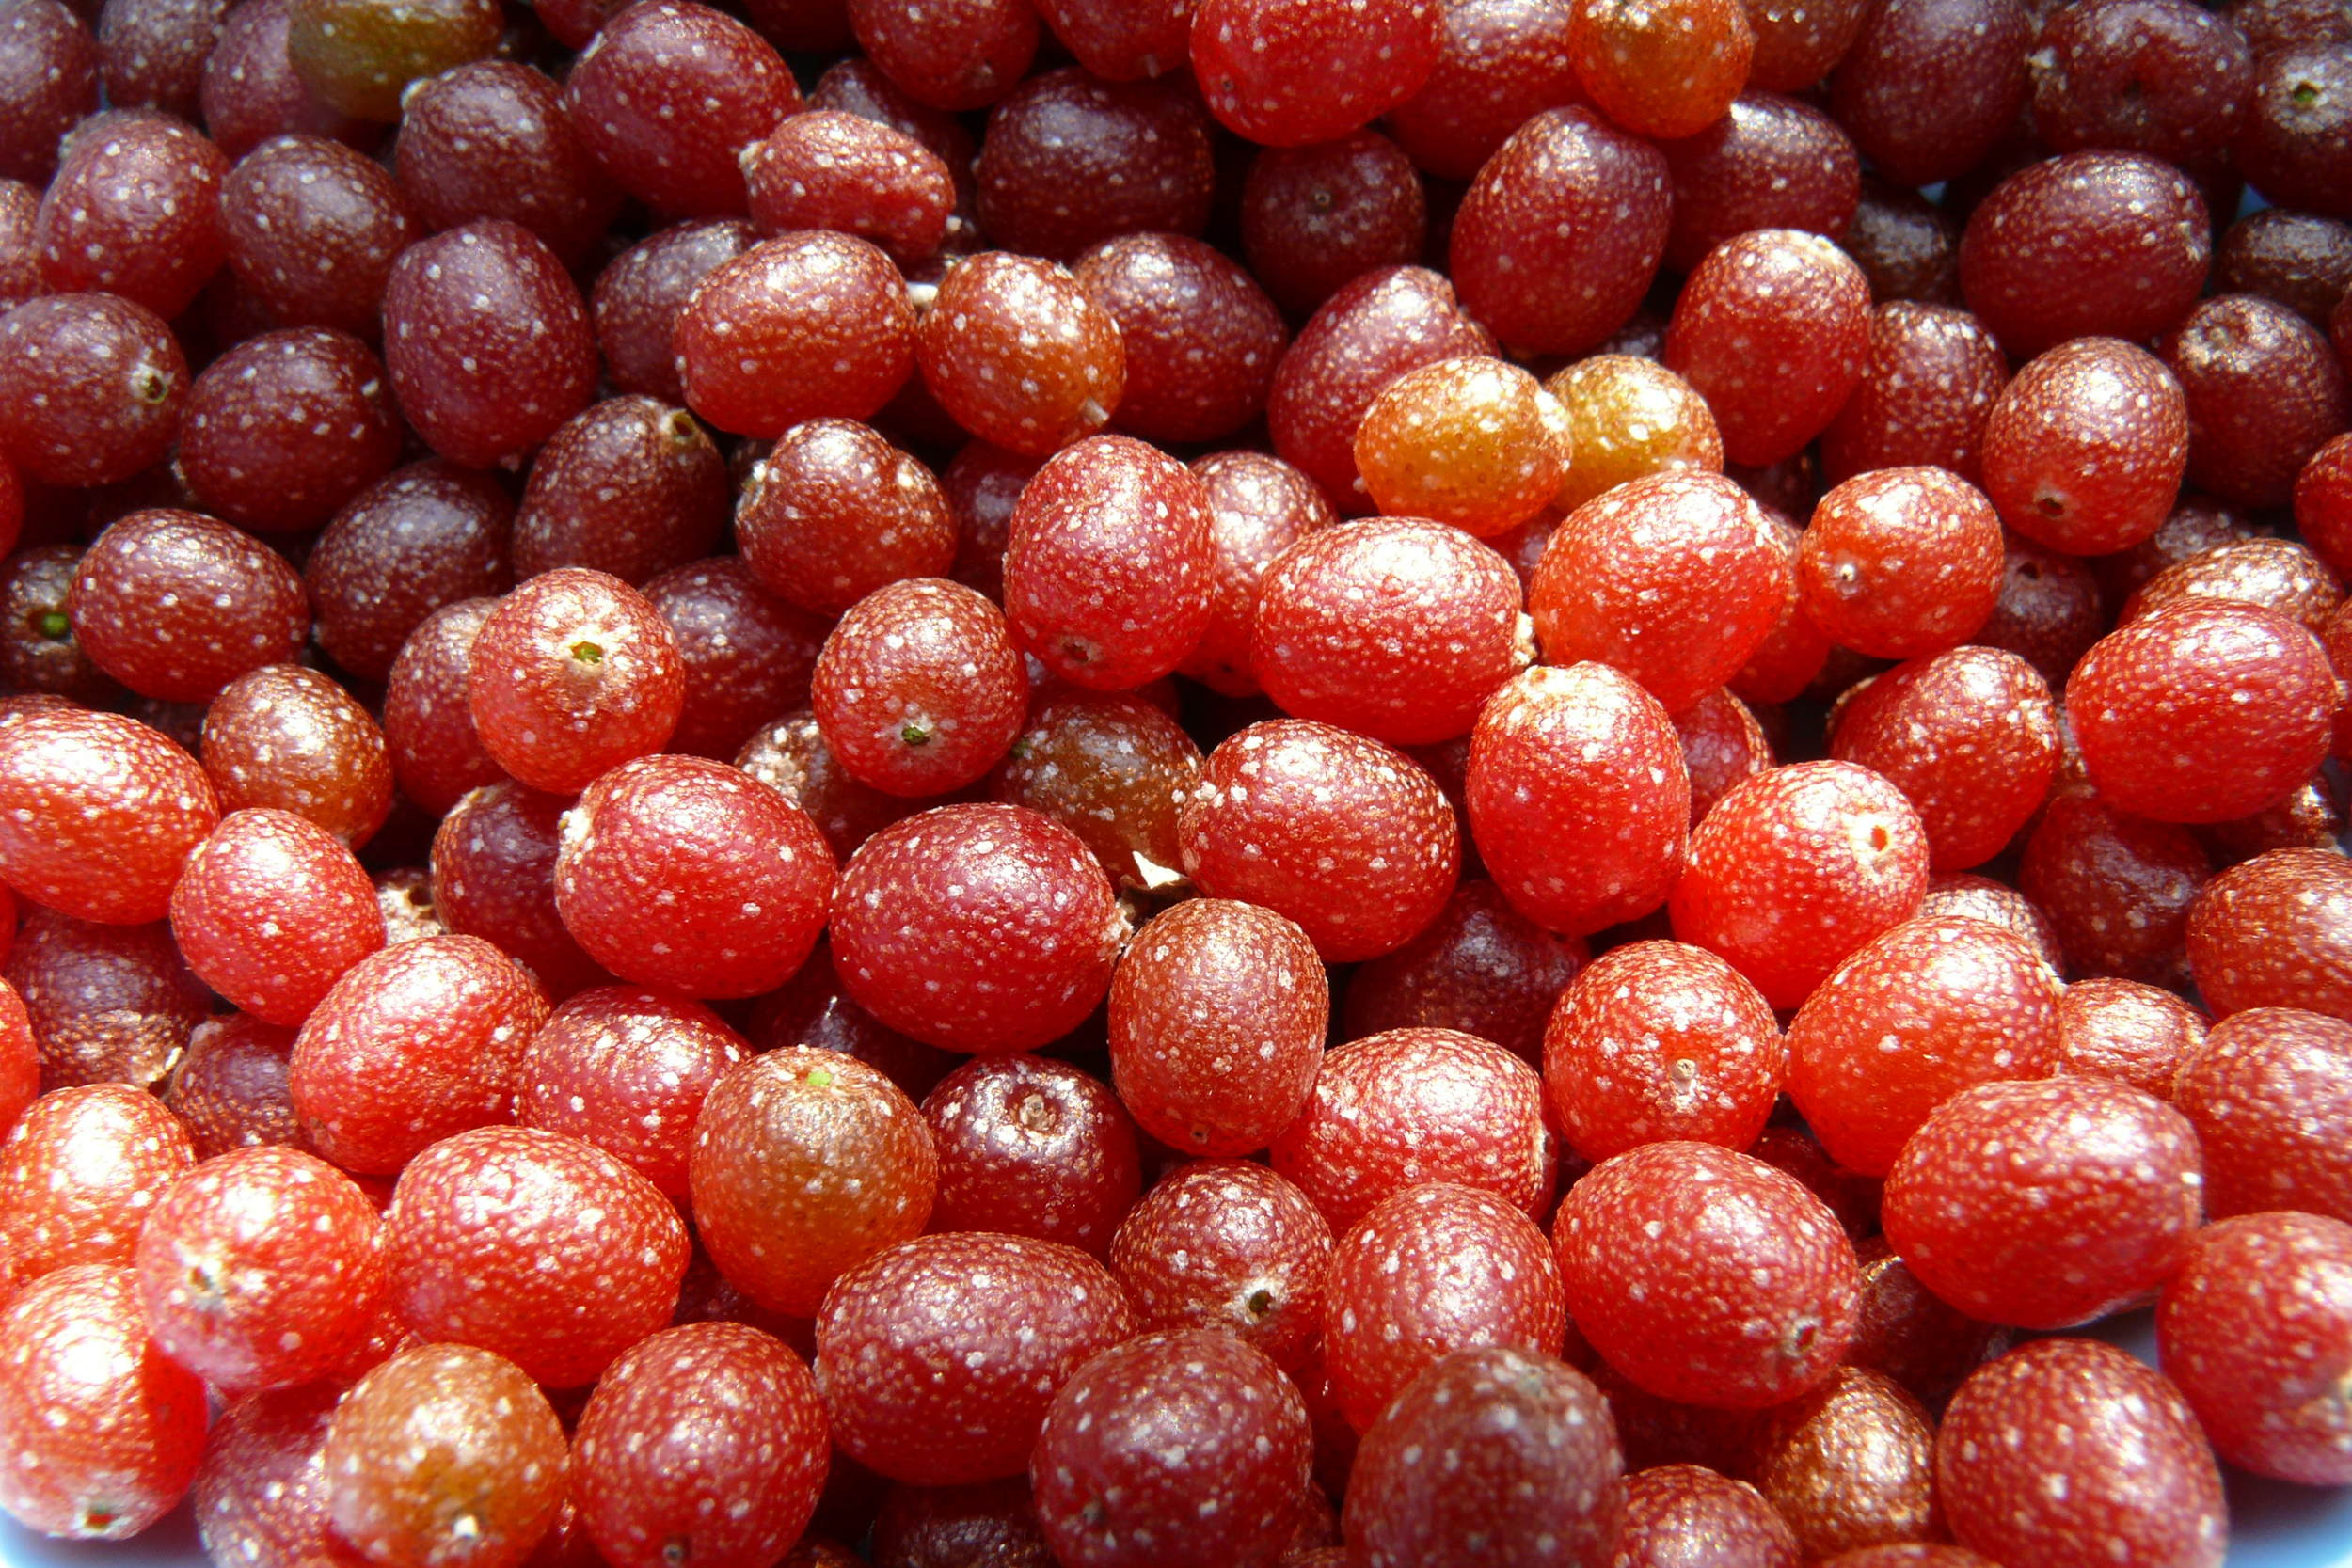 Berries are easily identified by the silvery-speckles that grace their skin